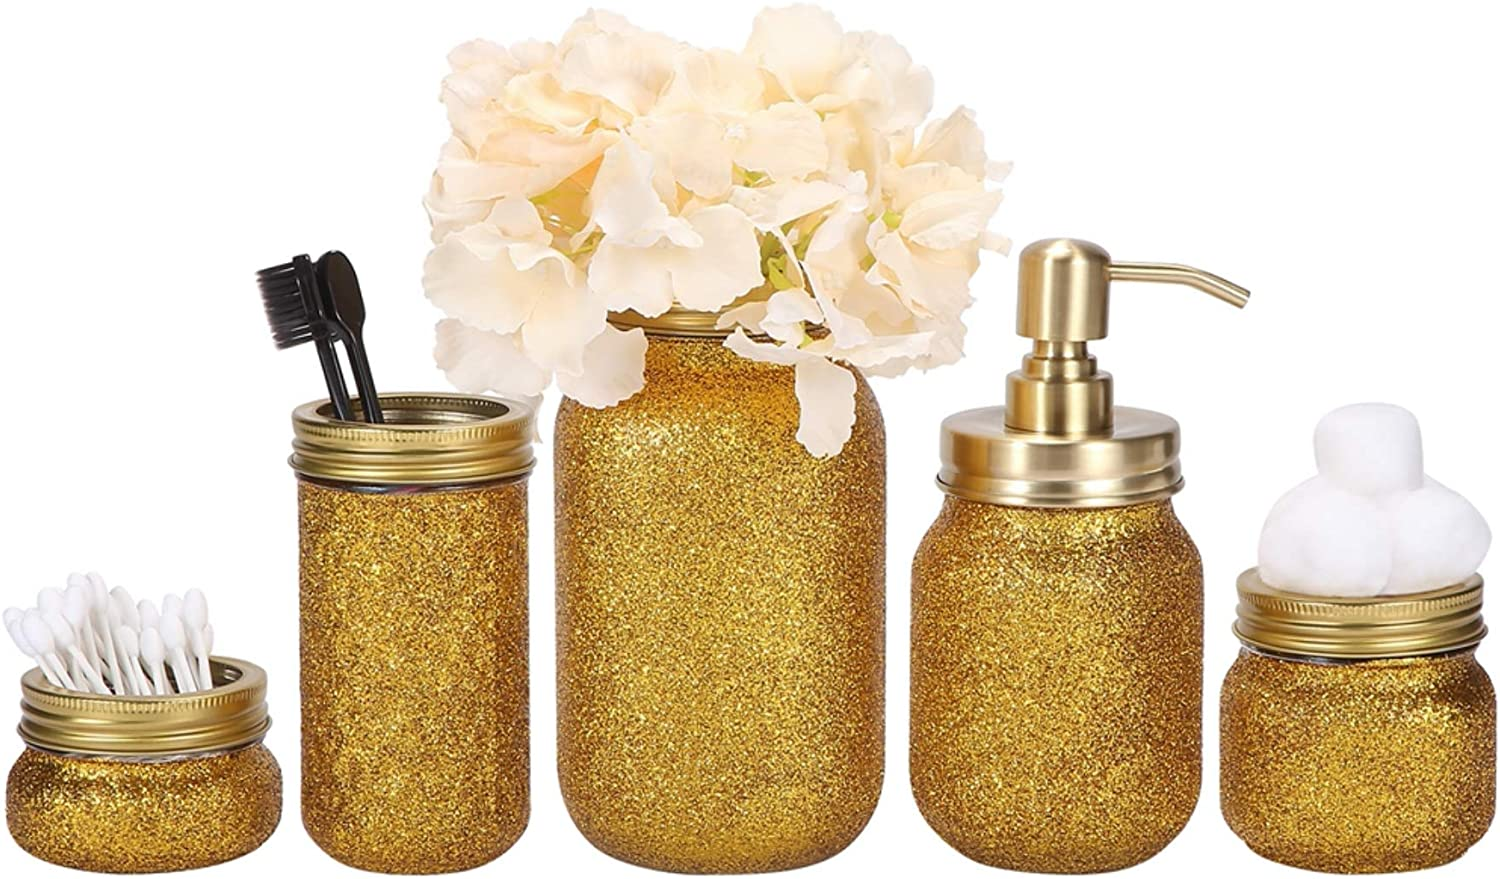 Quotidian Glitter Mason Jar Bathroom Set 5 Piece with Soap Dispenser,Flower Vase, Toothbrush Holder for Wedding House Decor Countertop and Vanity Organizer Bathroom Accessory Sets (Gold)